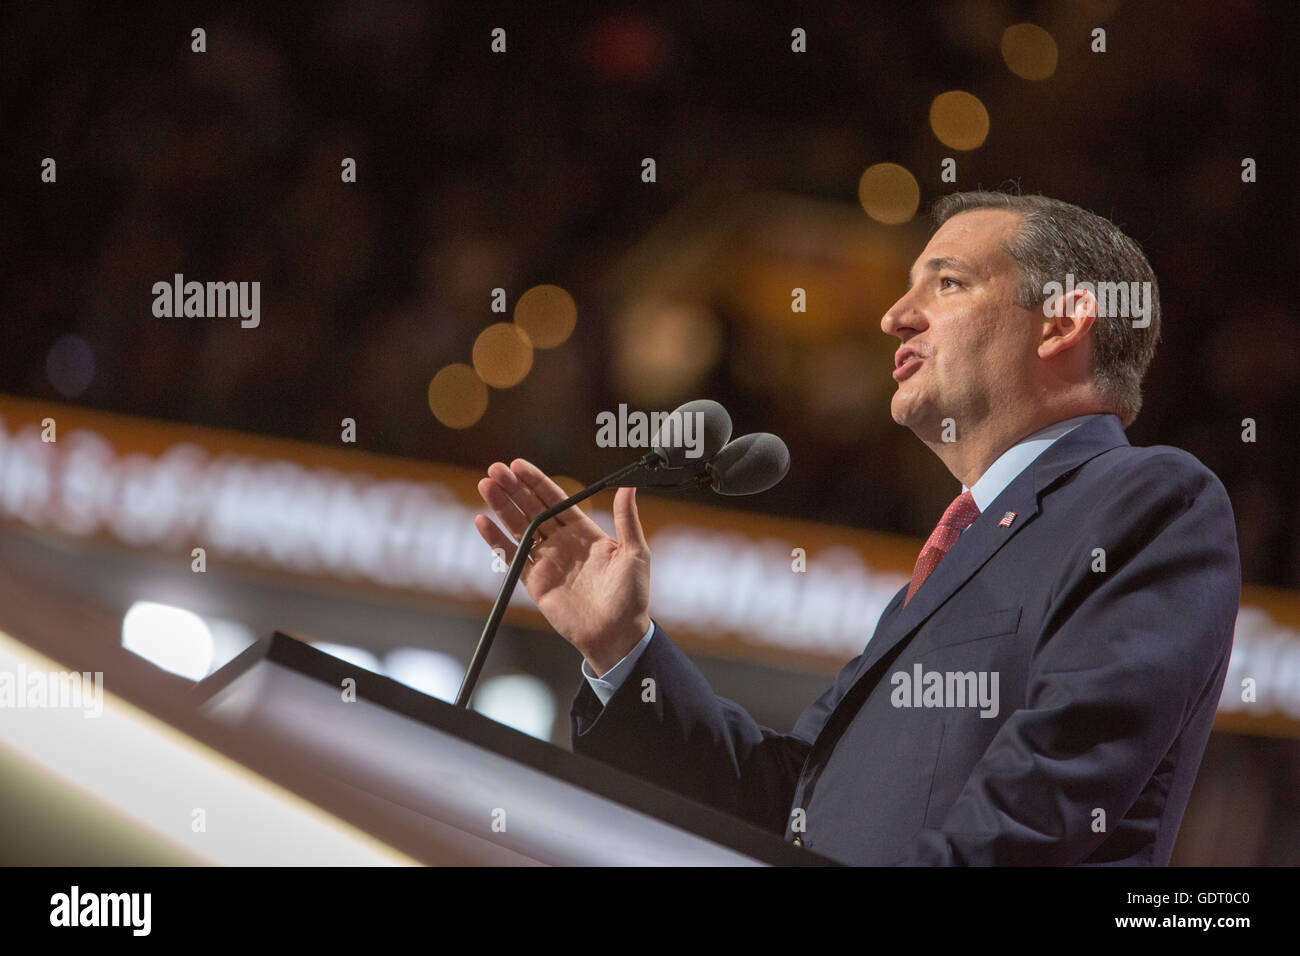 Cleveland, Ohio, USA; July 20, 2016: Texas Senator and defeated presidential candidate Ted Cruz speaks at Republican - Stock Image